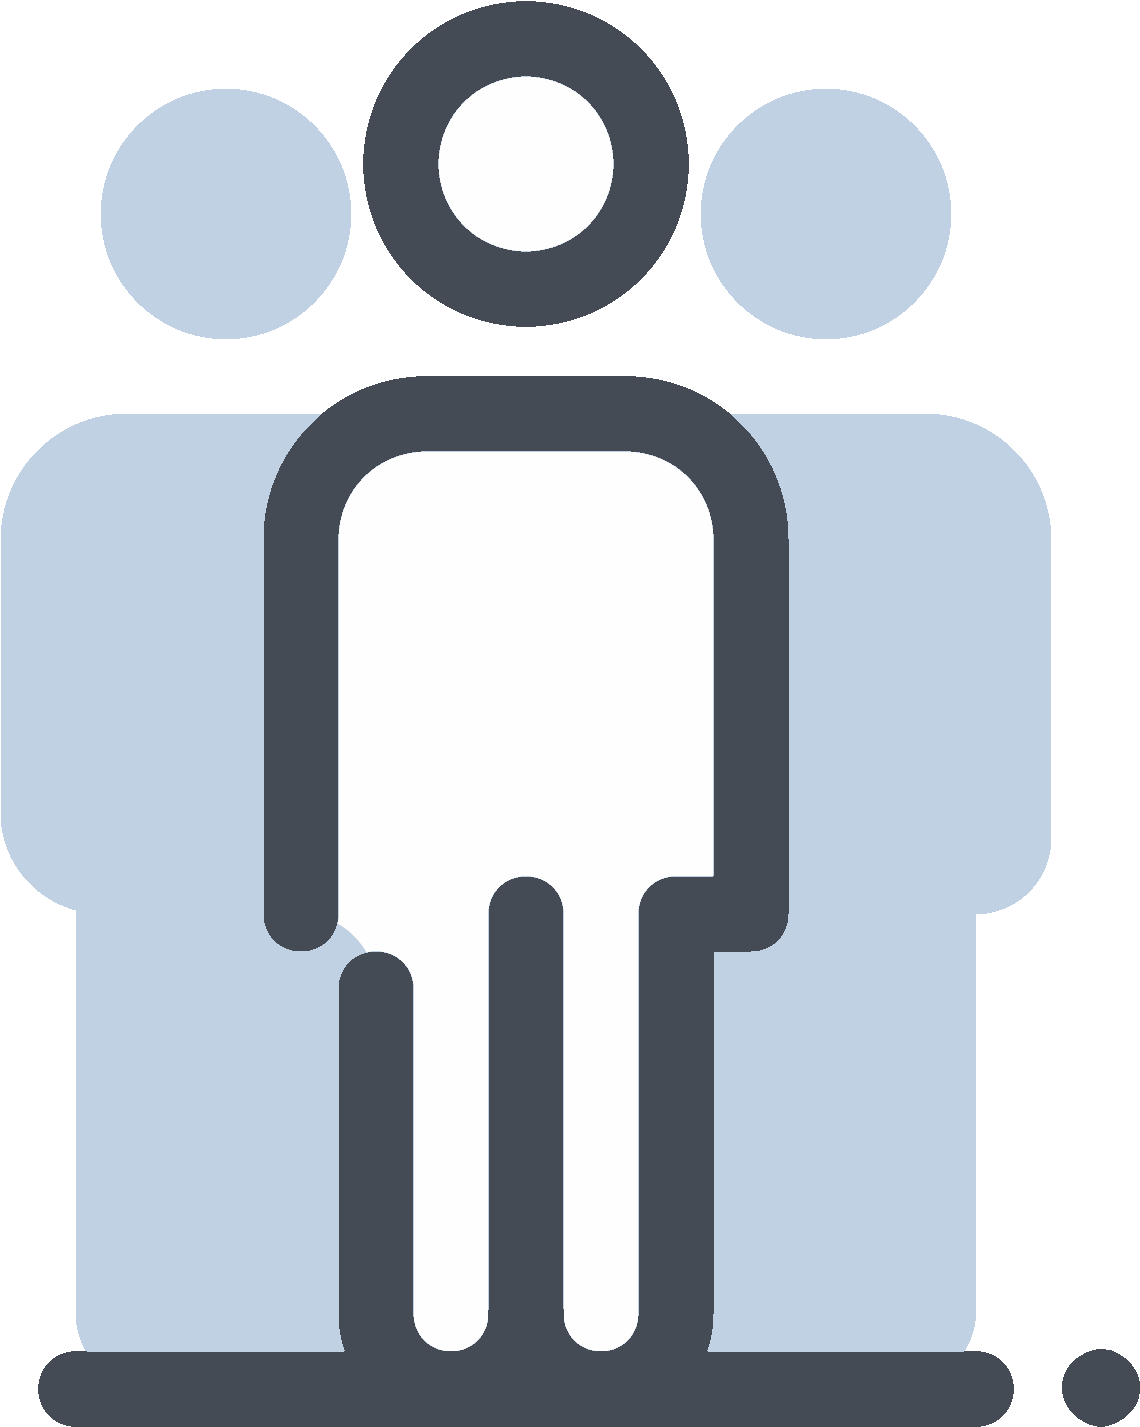 Male Icon Free Download Png And Vector.